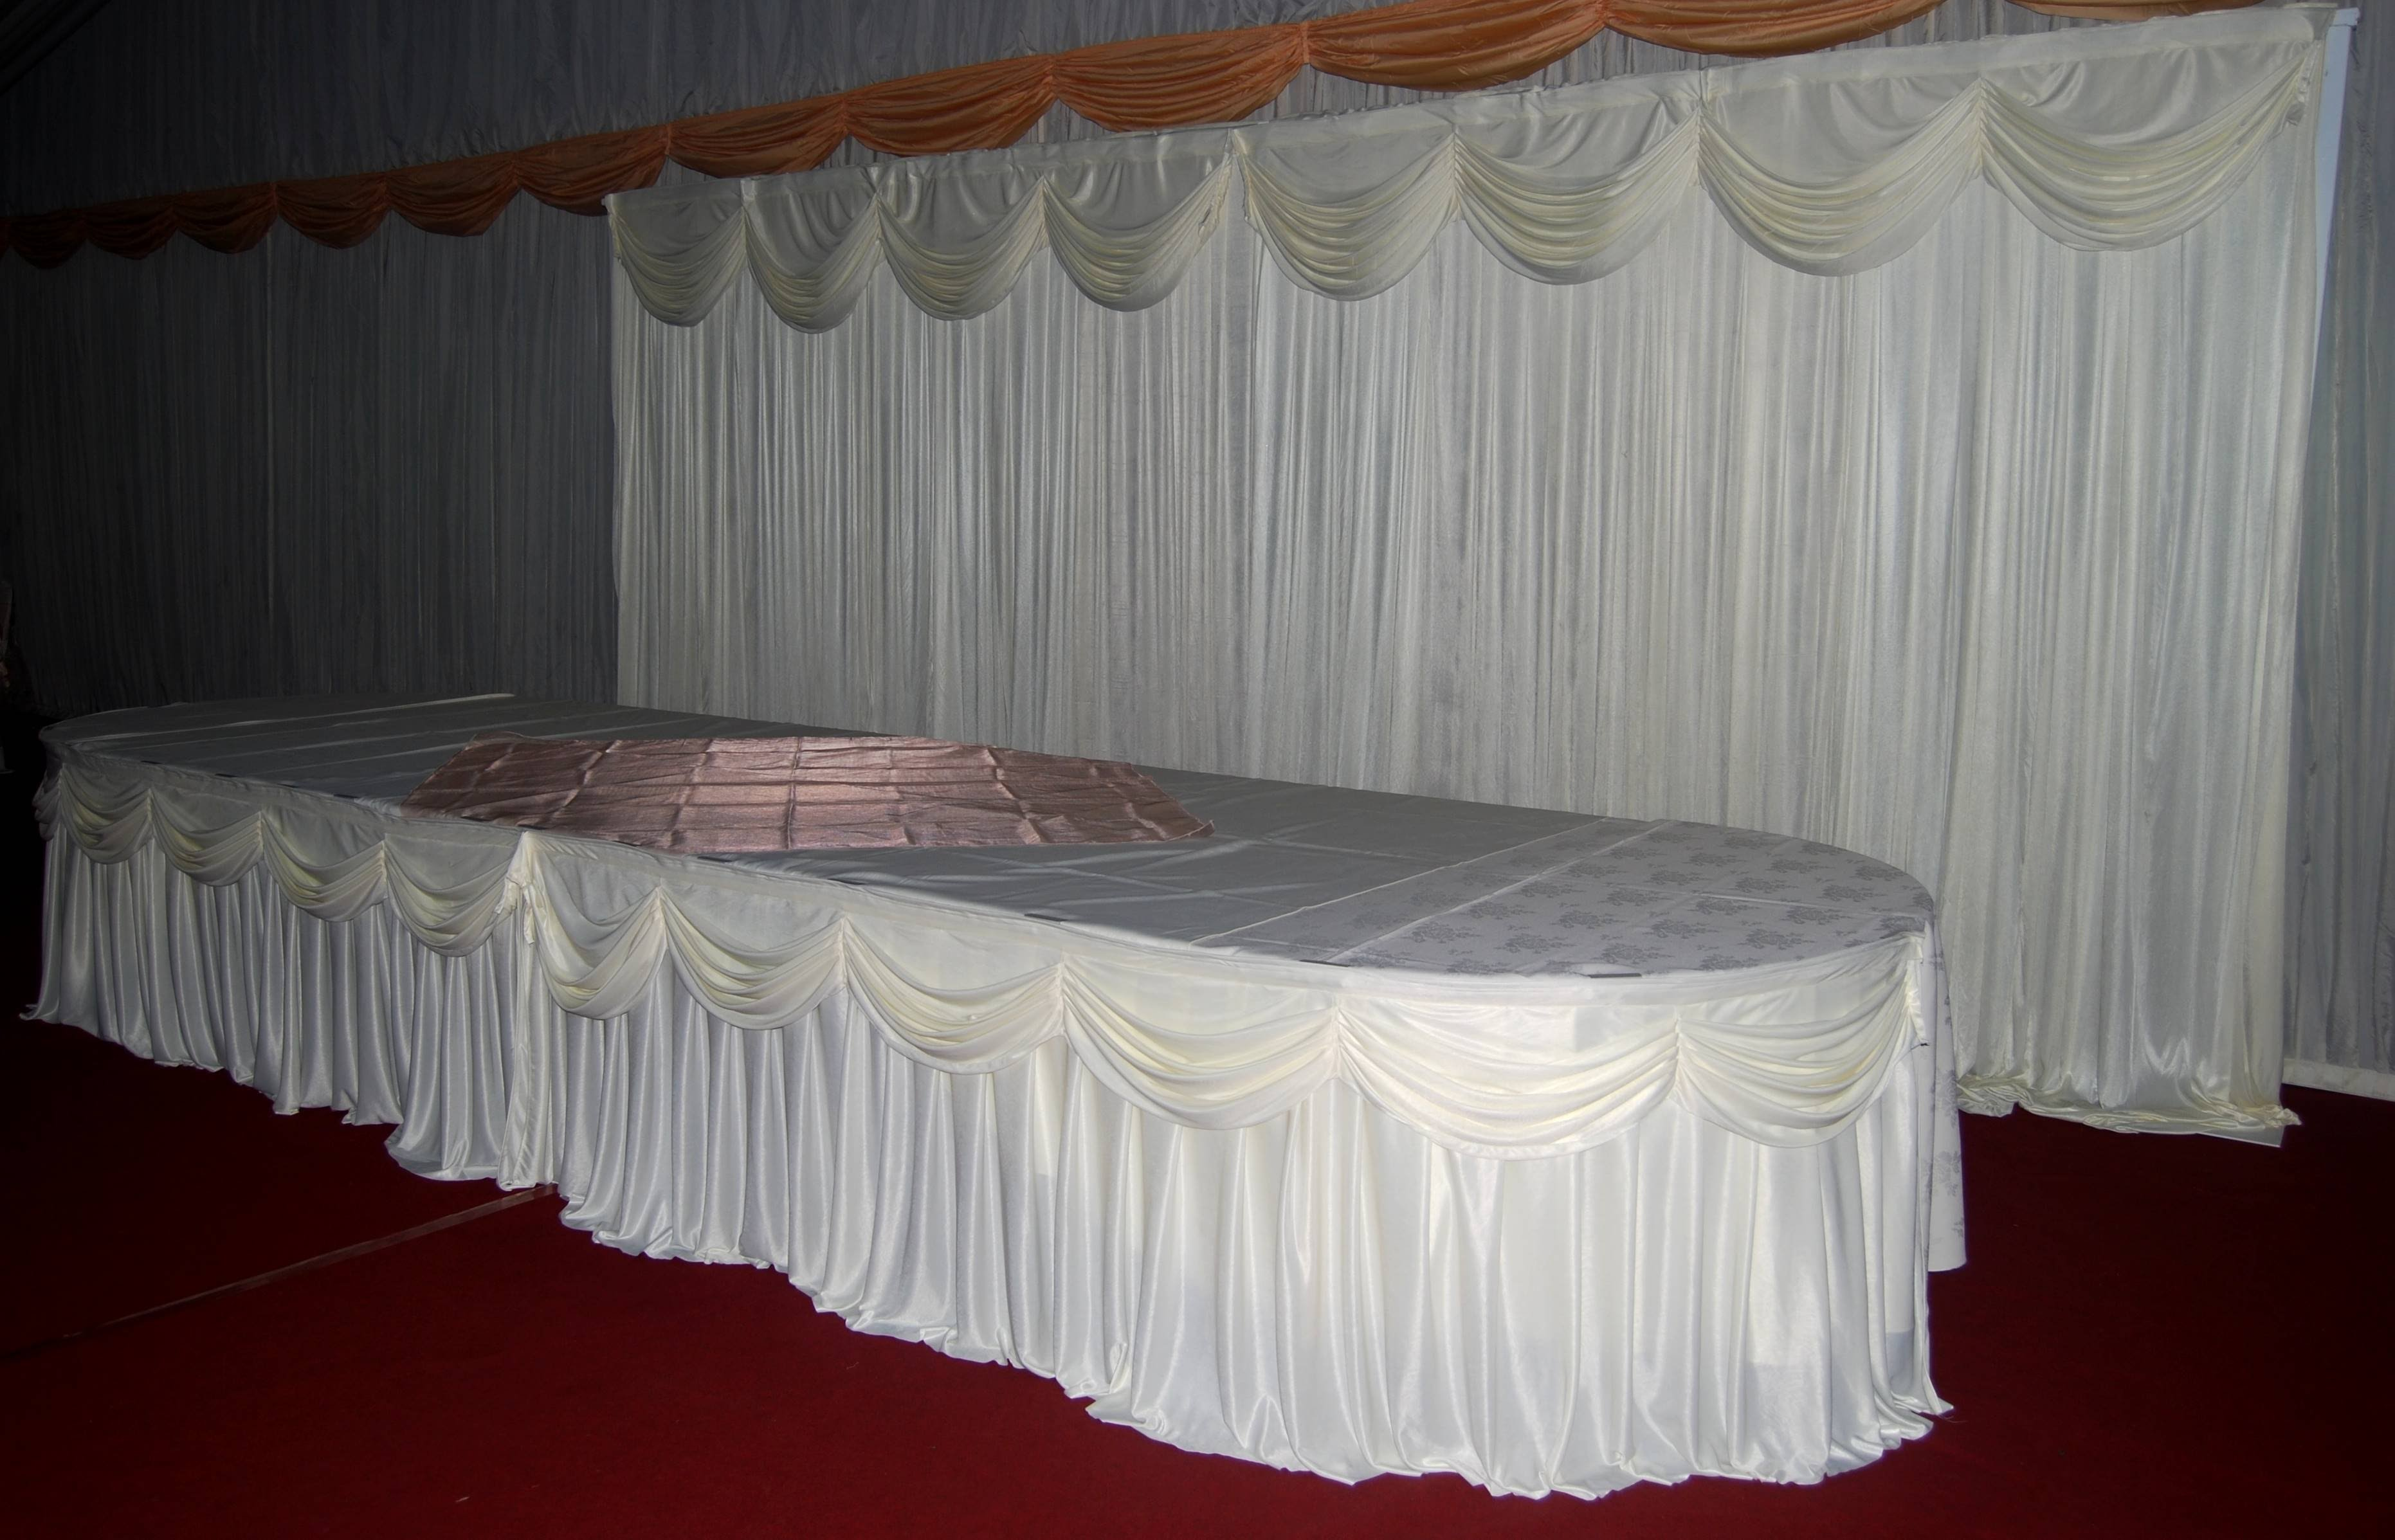 Ceilingdrapes Amp Toptableskirtingwithlights Arriveinstyleuk